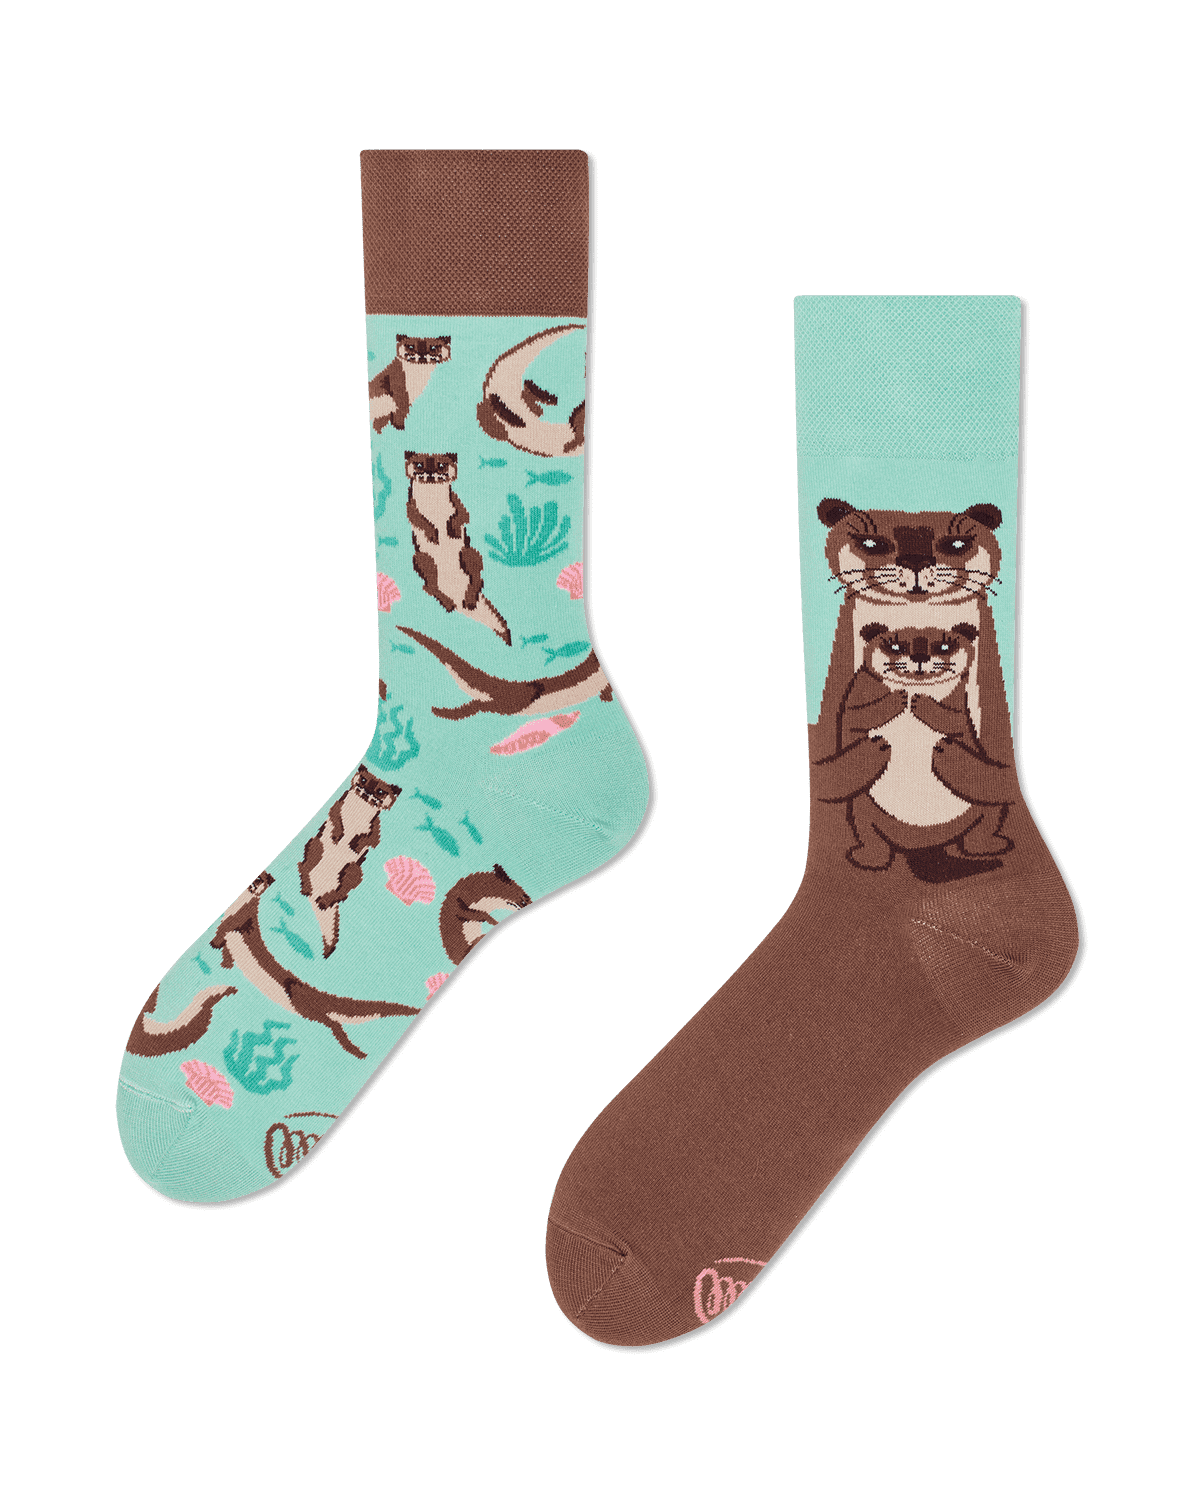 OTTER STORIES - Calcetines con nutrias